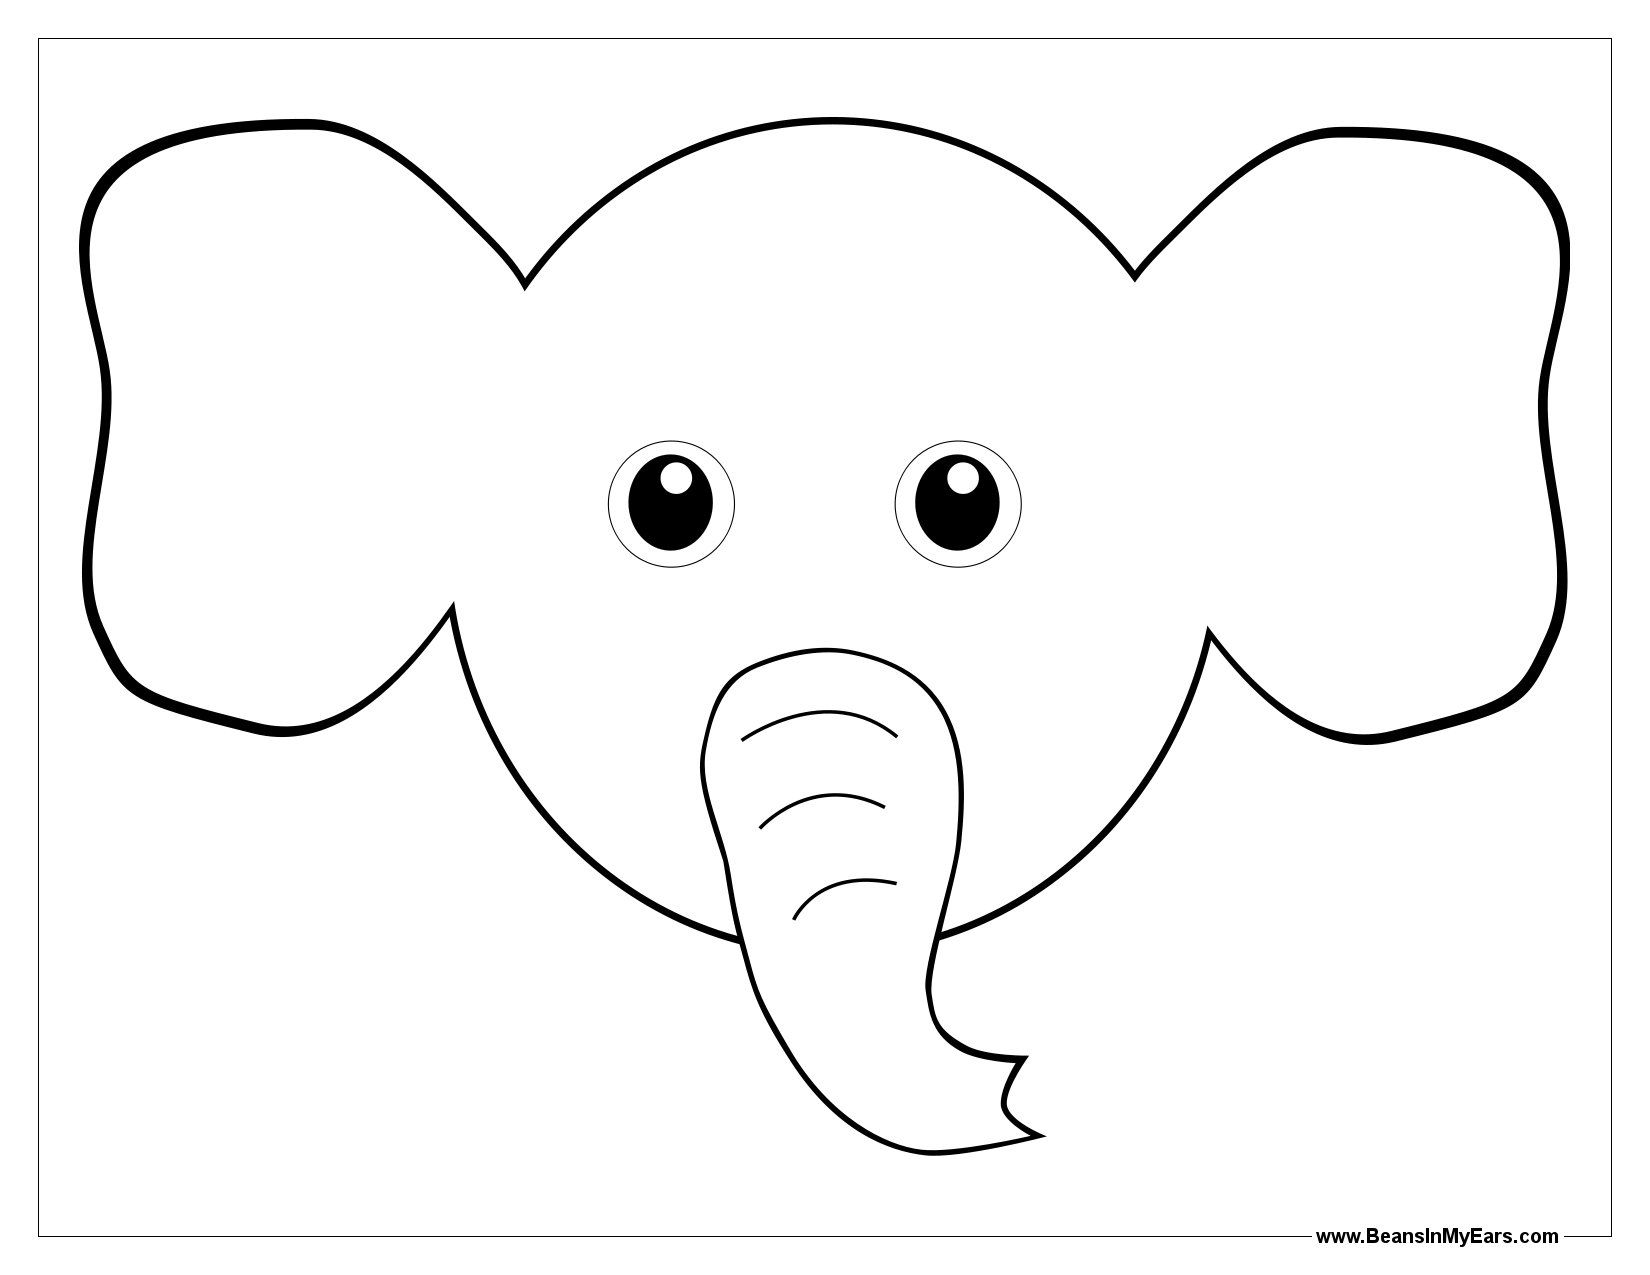 Elephant Head Coloring Page Elephant Coloring Page Animal Coloring Pages Frog Coloring Pages